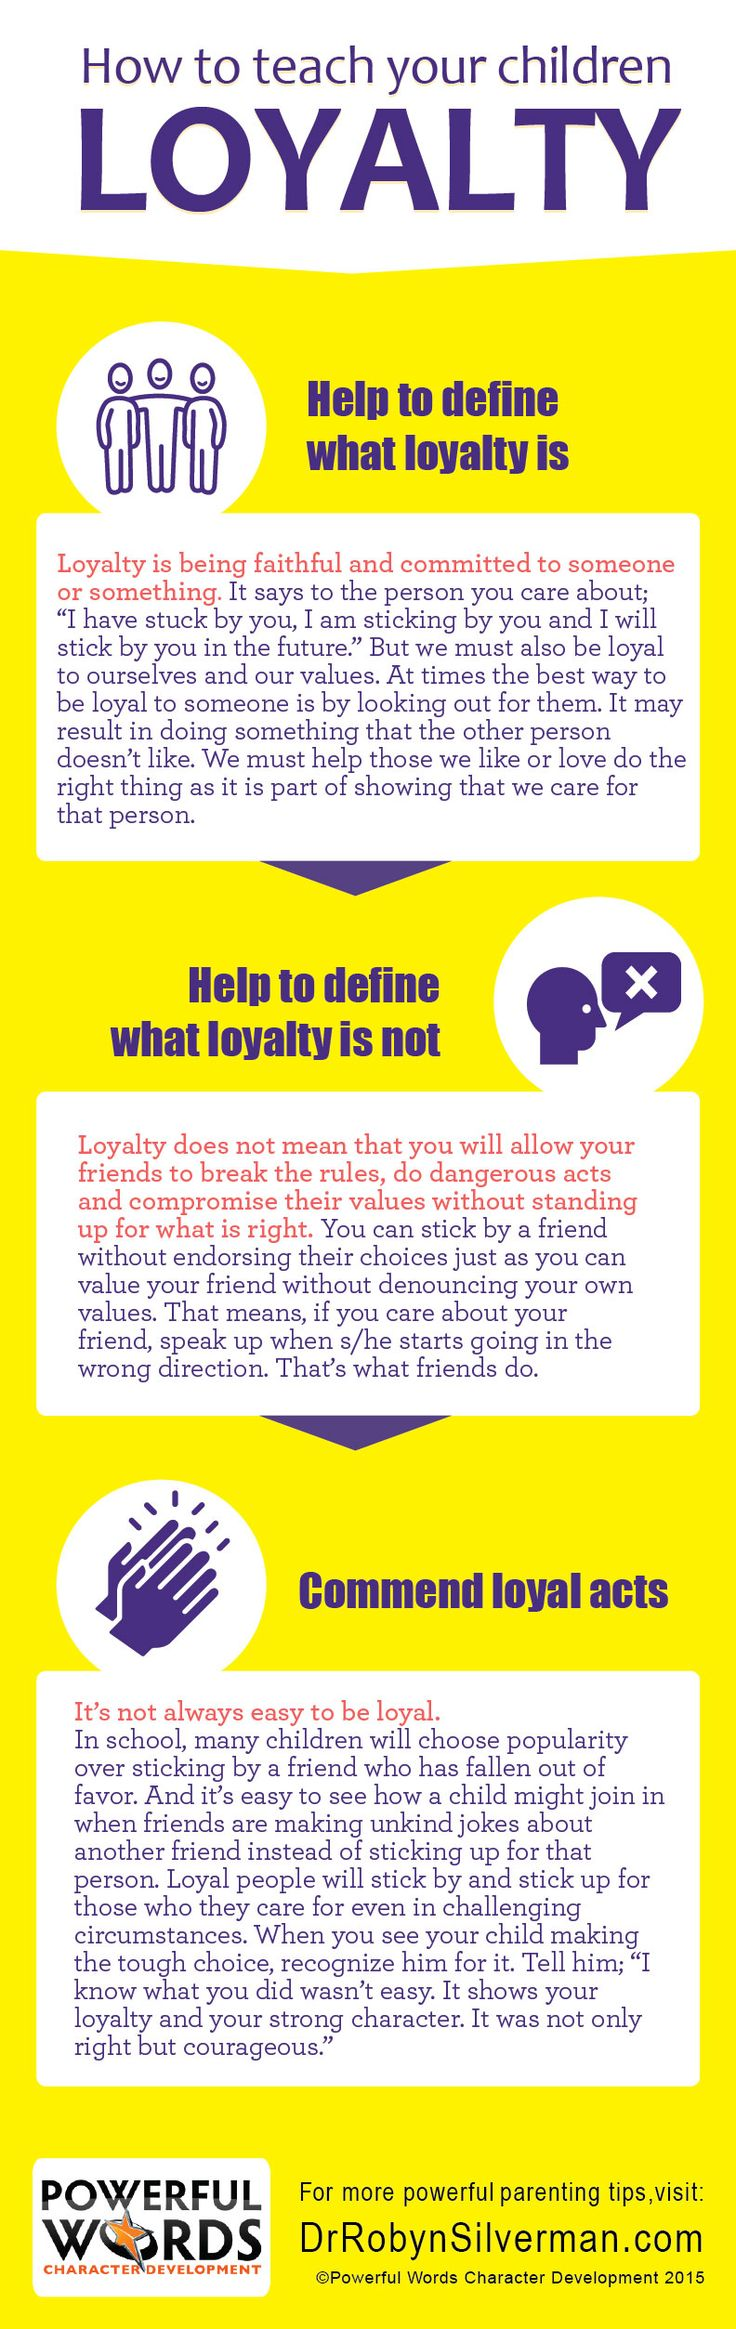 How To Teach Your Children Loyalty #powerfulwords #drrobyn #parenting